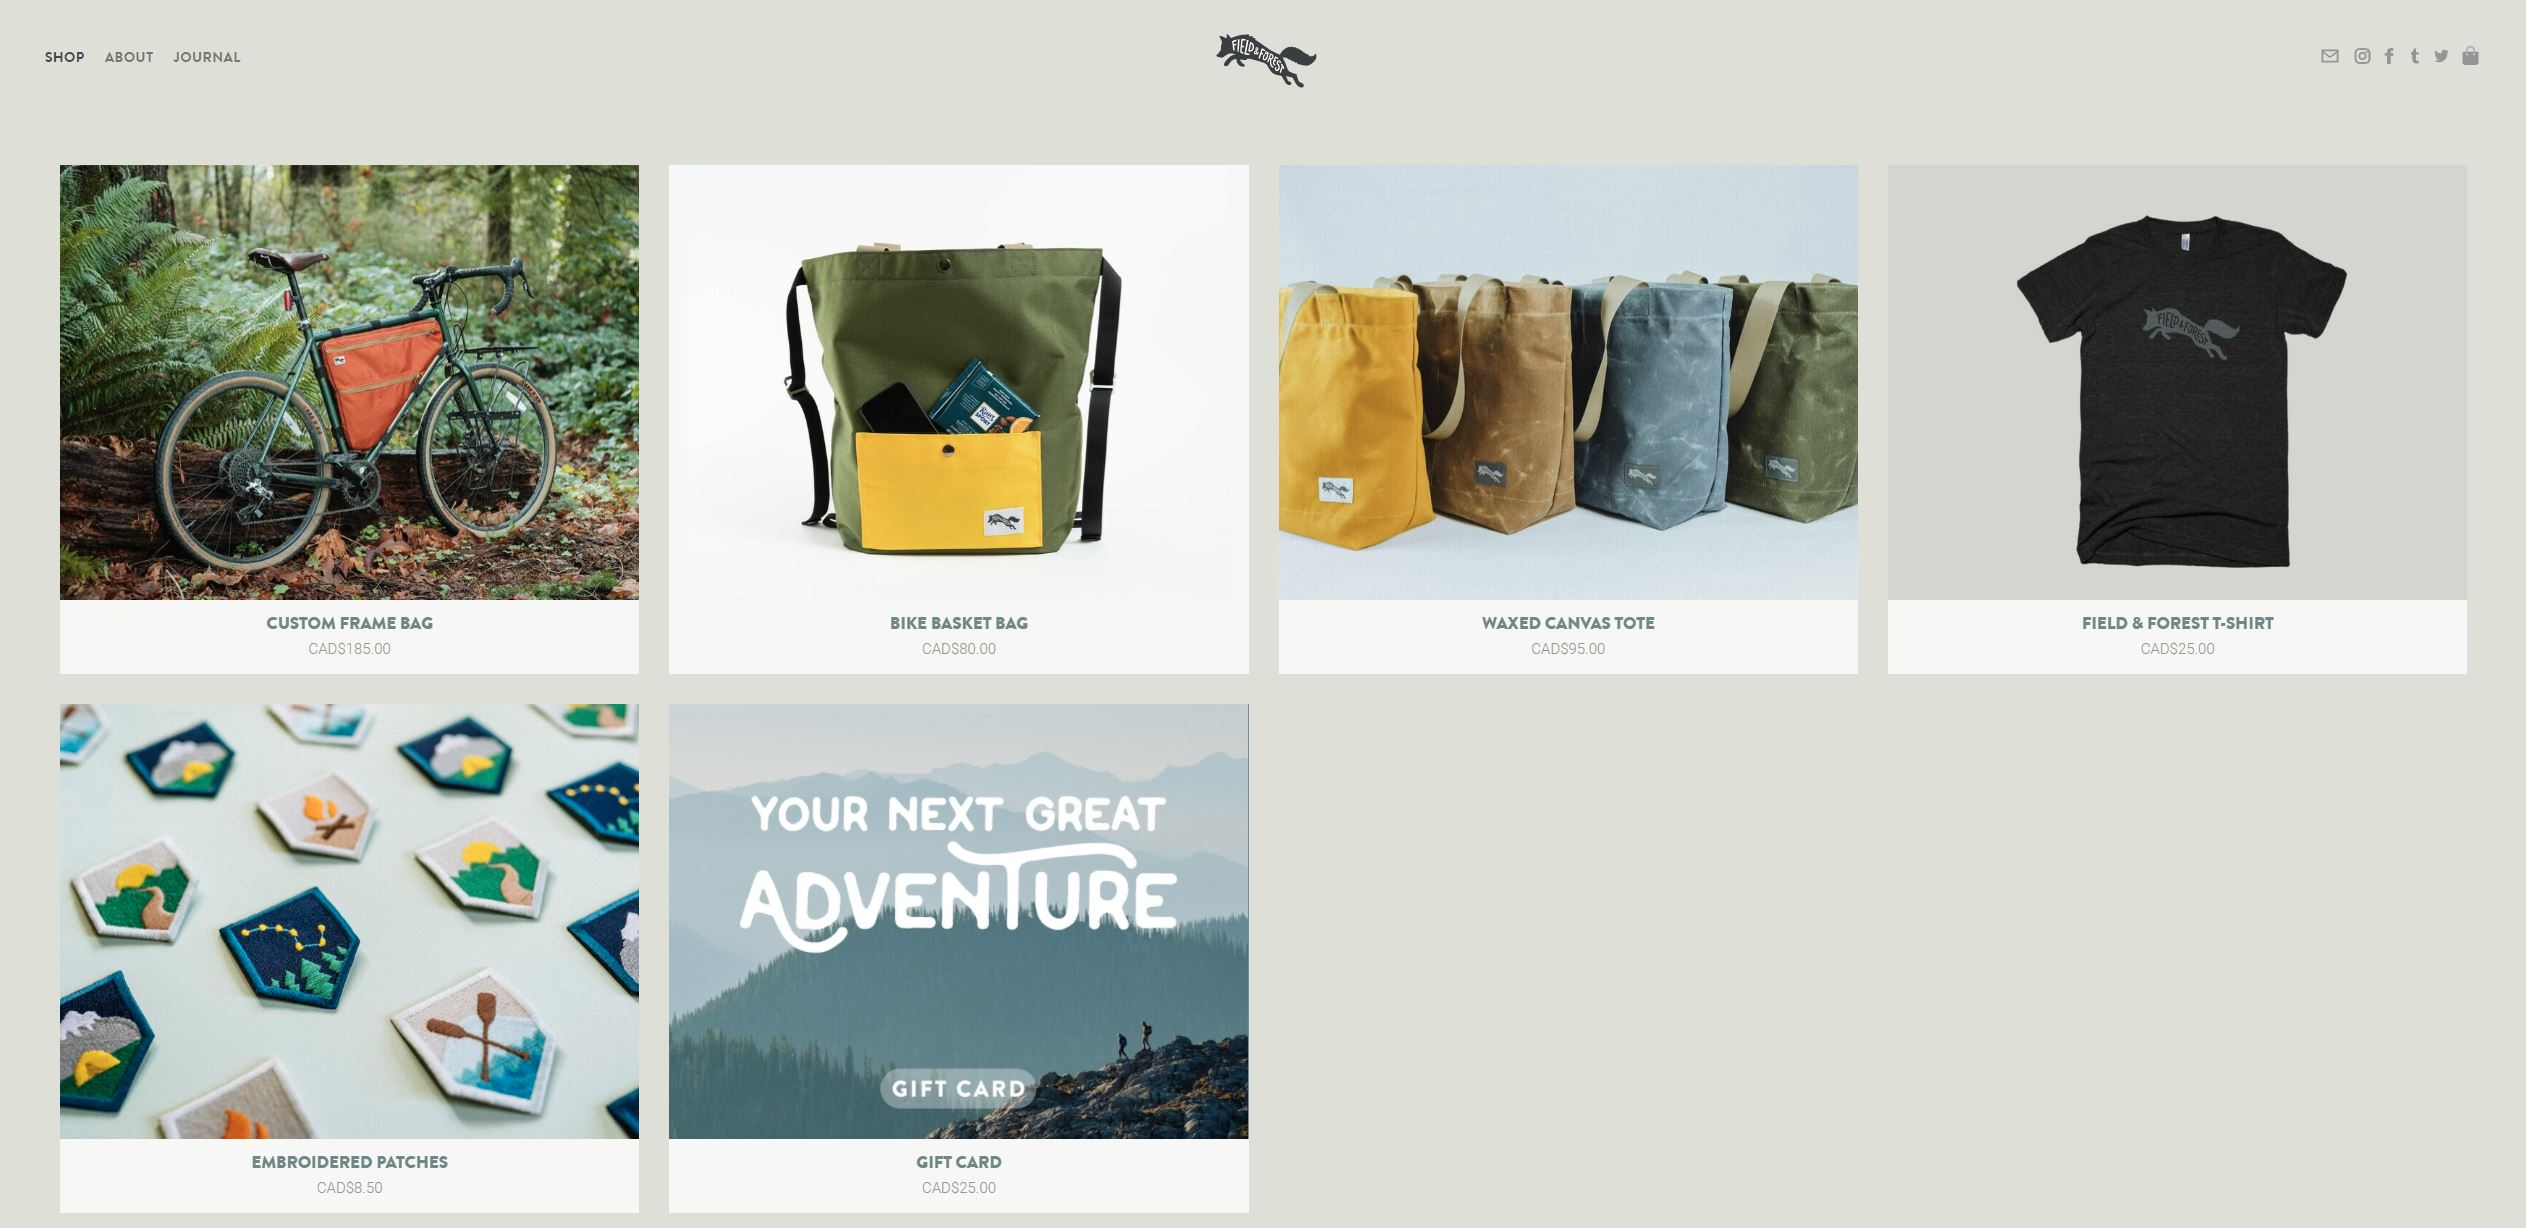 Field and Forest Frame Bag Product Page.